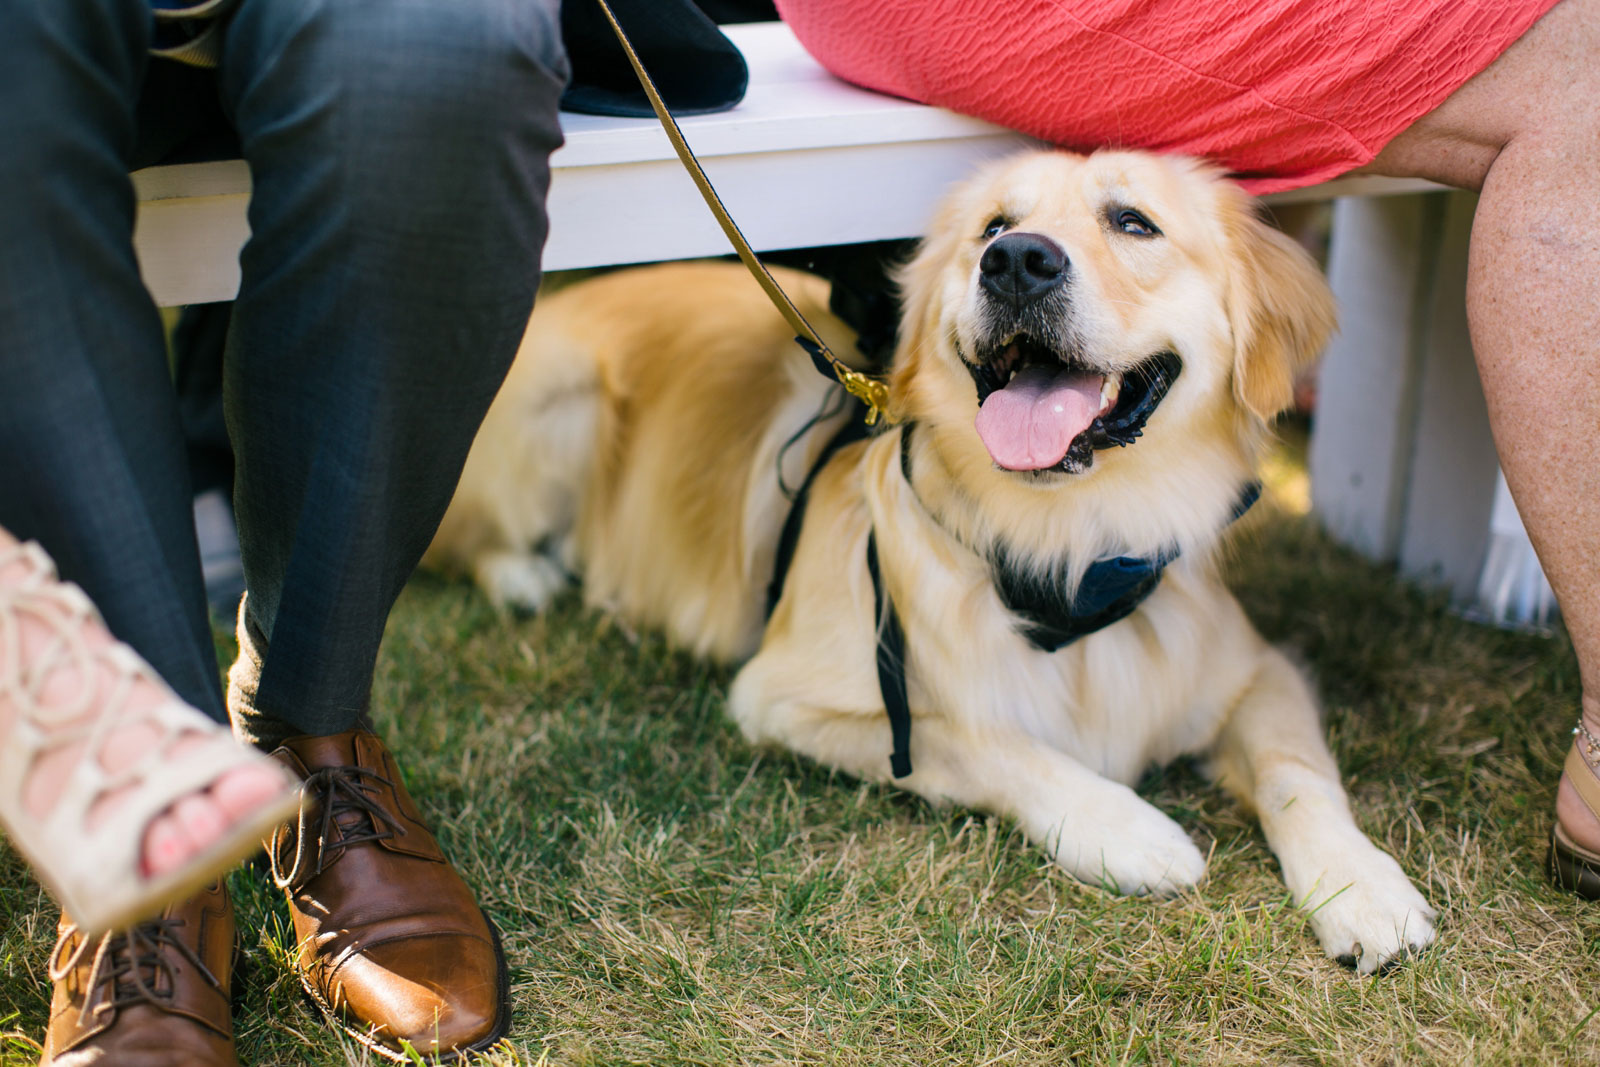 Golden retriever dog panting and smiling laying under bench during wedding ceremony.